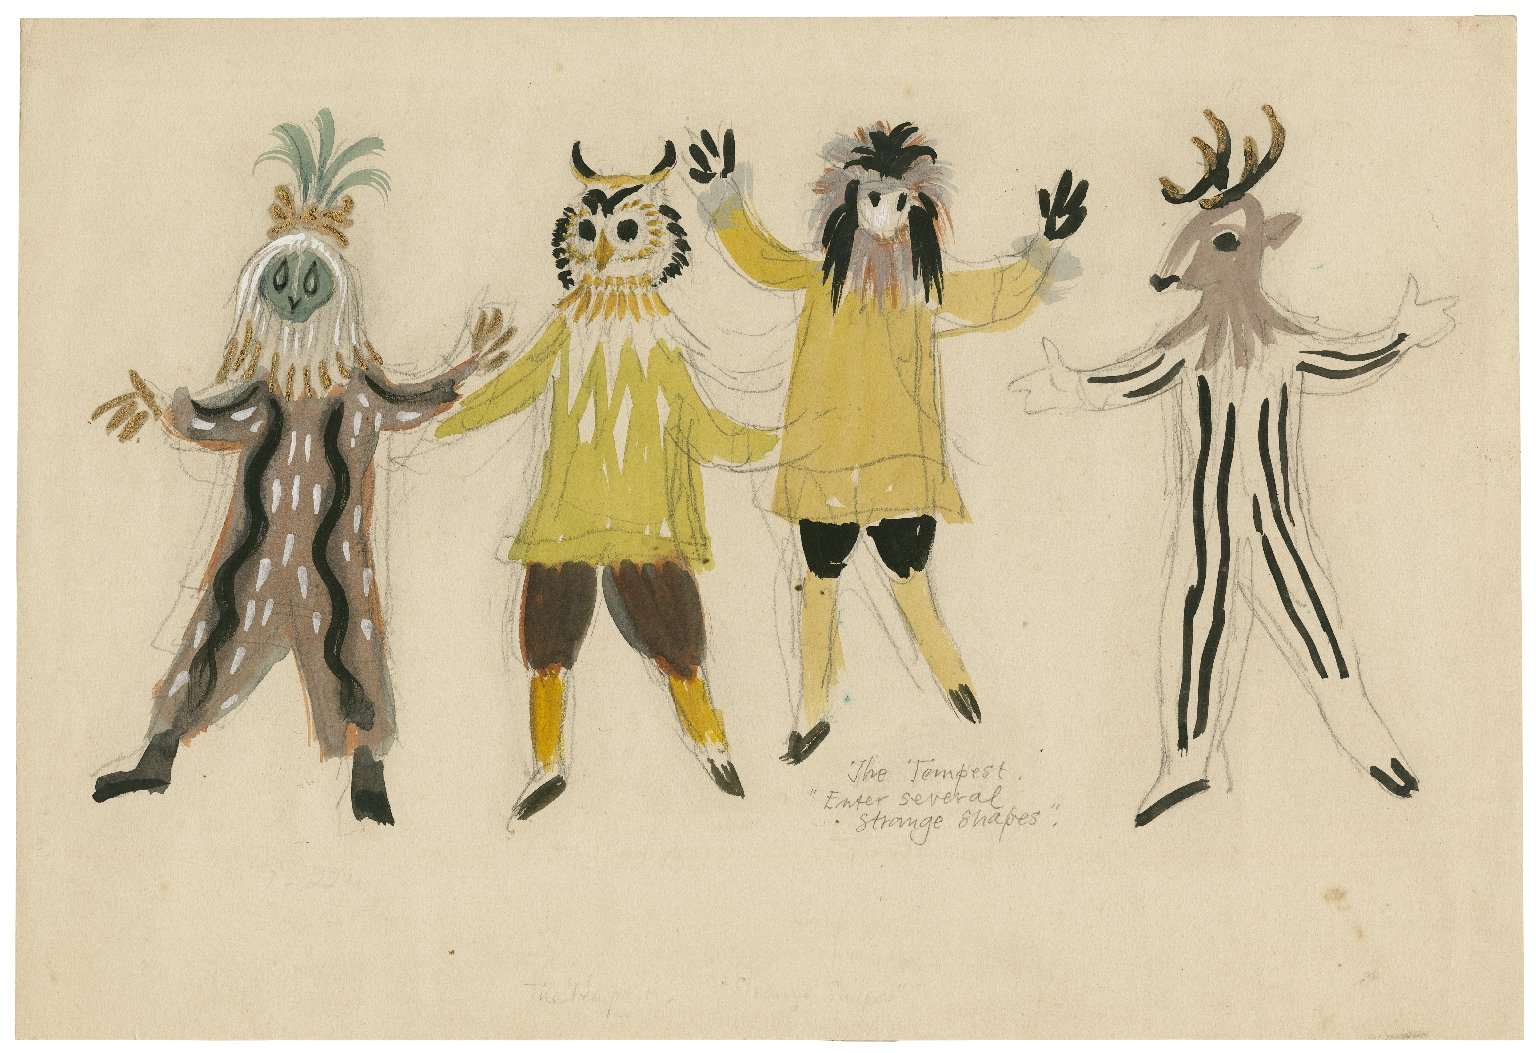 """Sheet of sketches for costumes for the """"Strange Shapes,"""" the Tempest"""